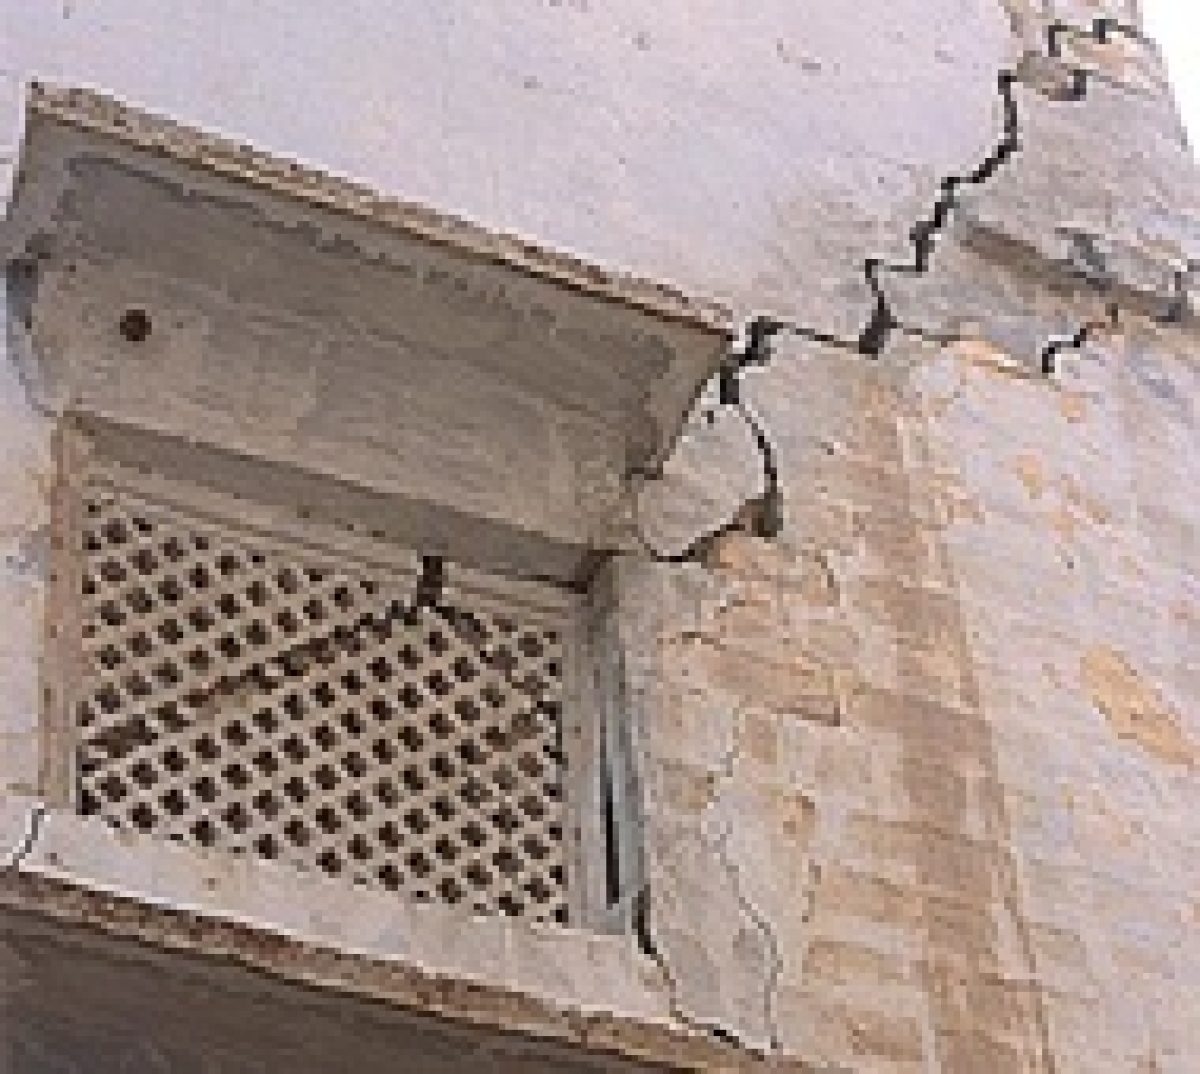 Quake: 5 persons injured in Mizoram, cracks appear in buildings